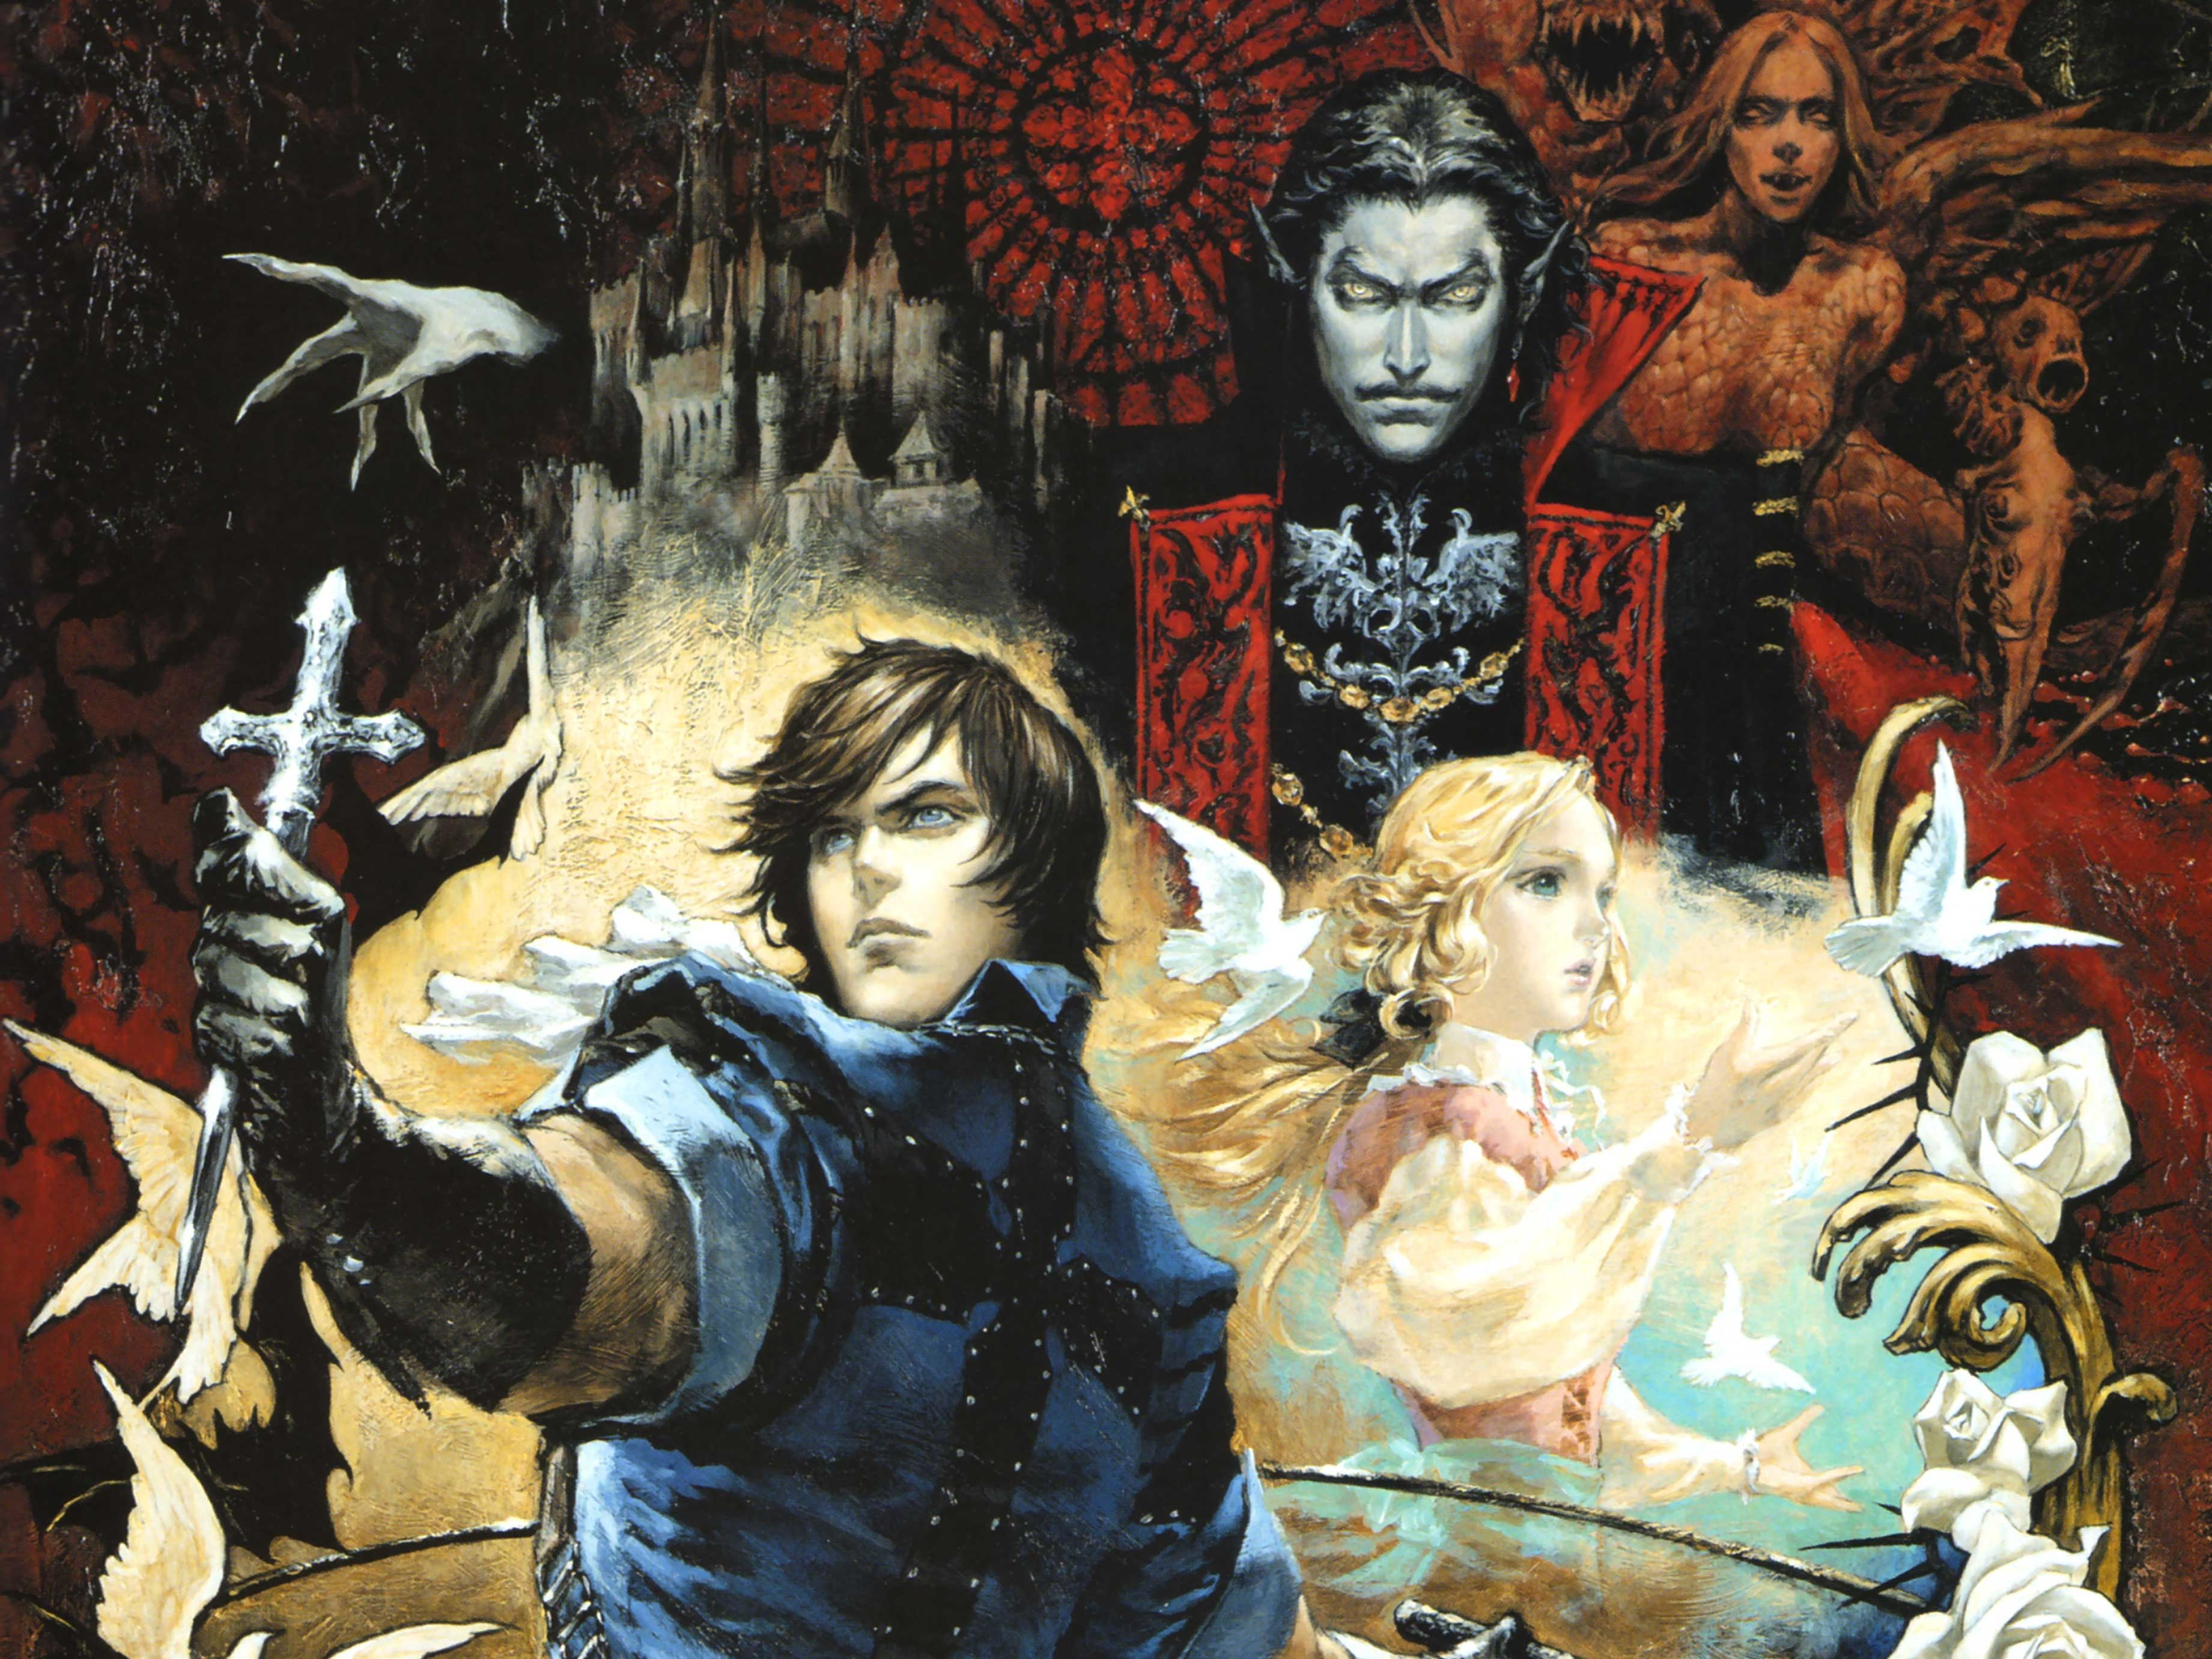 best castlevania wallpapers images on pinterest | wallpapers for